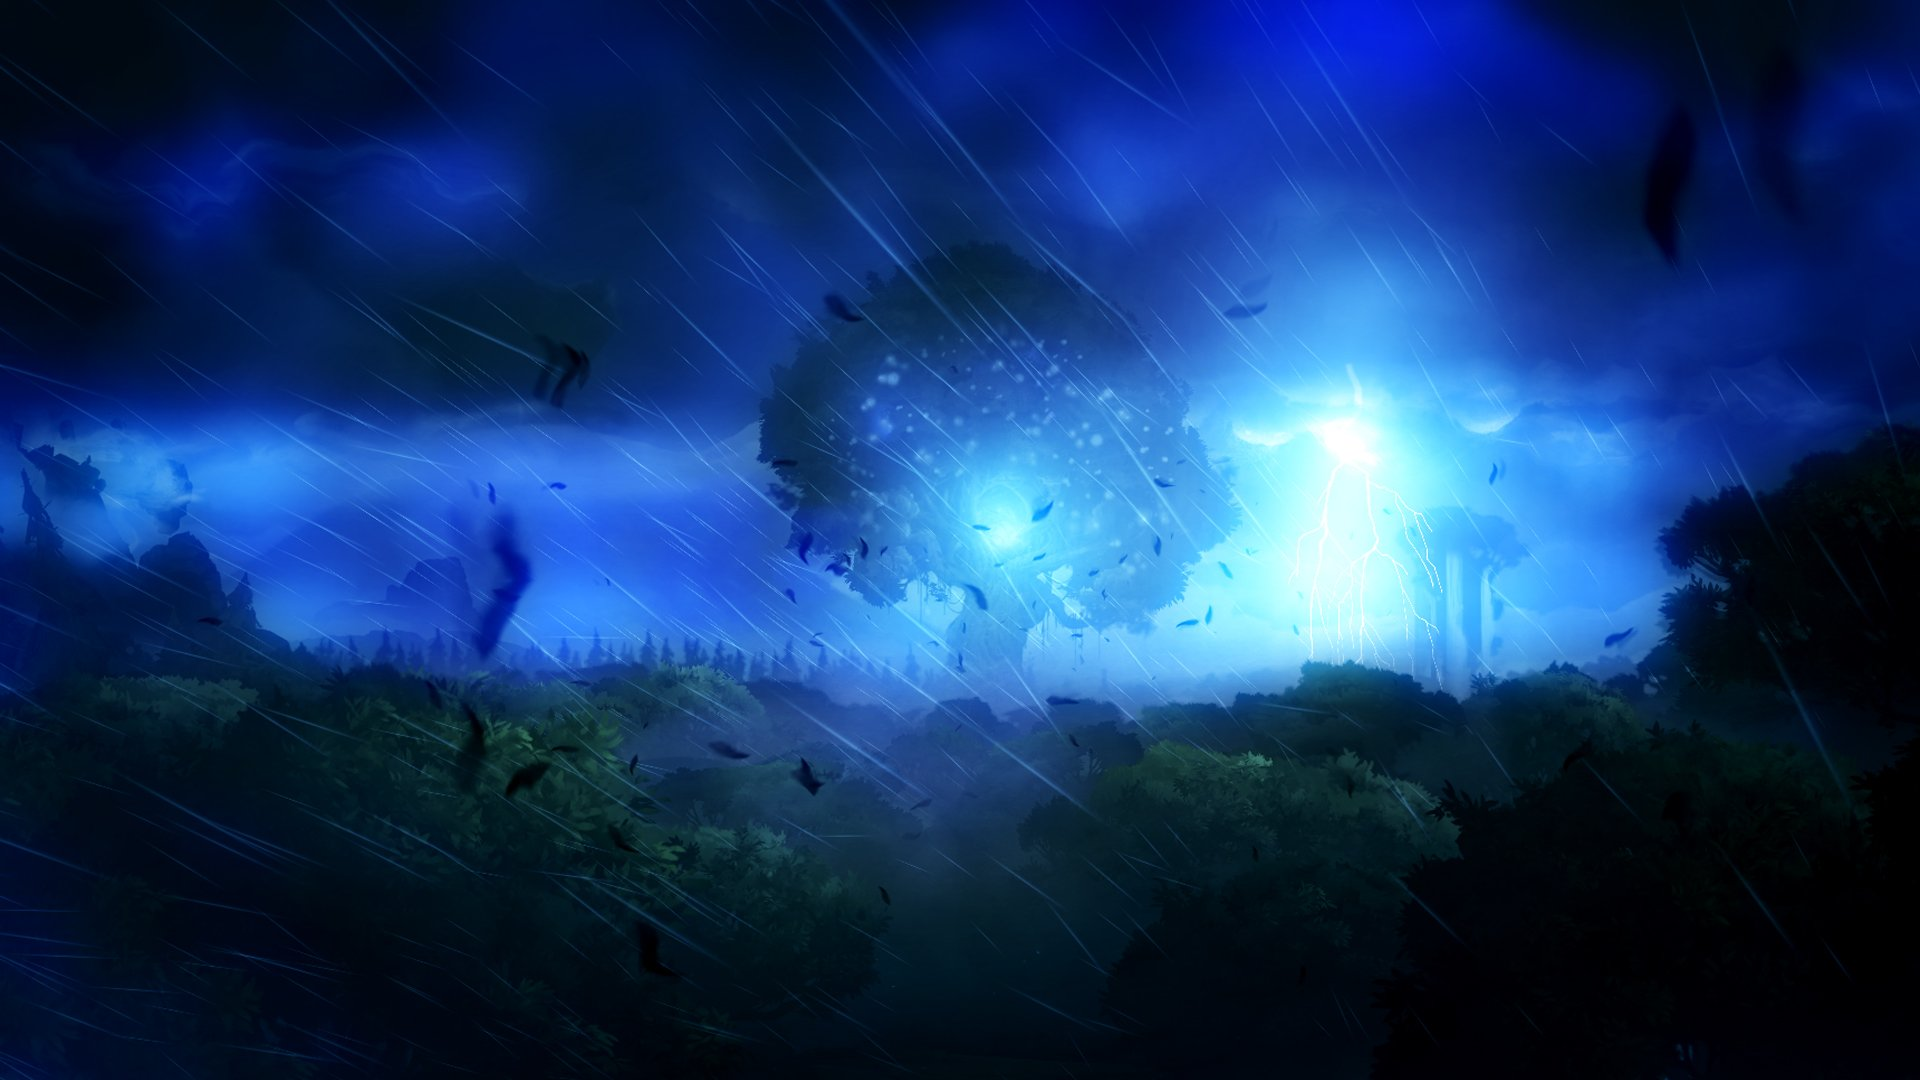 Ori and the Blind Forest Full HD Wallpaper and Background Image 1920x1080 ID:545451